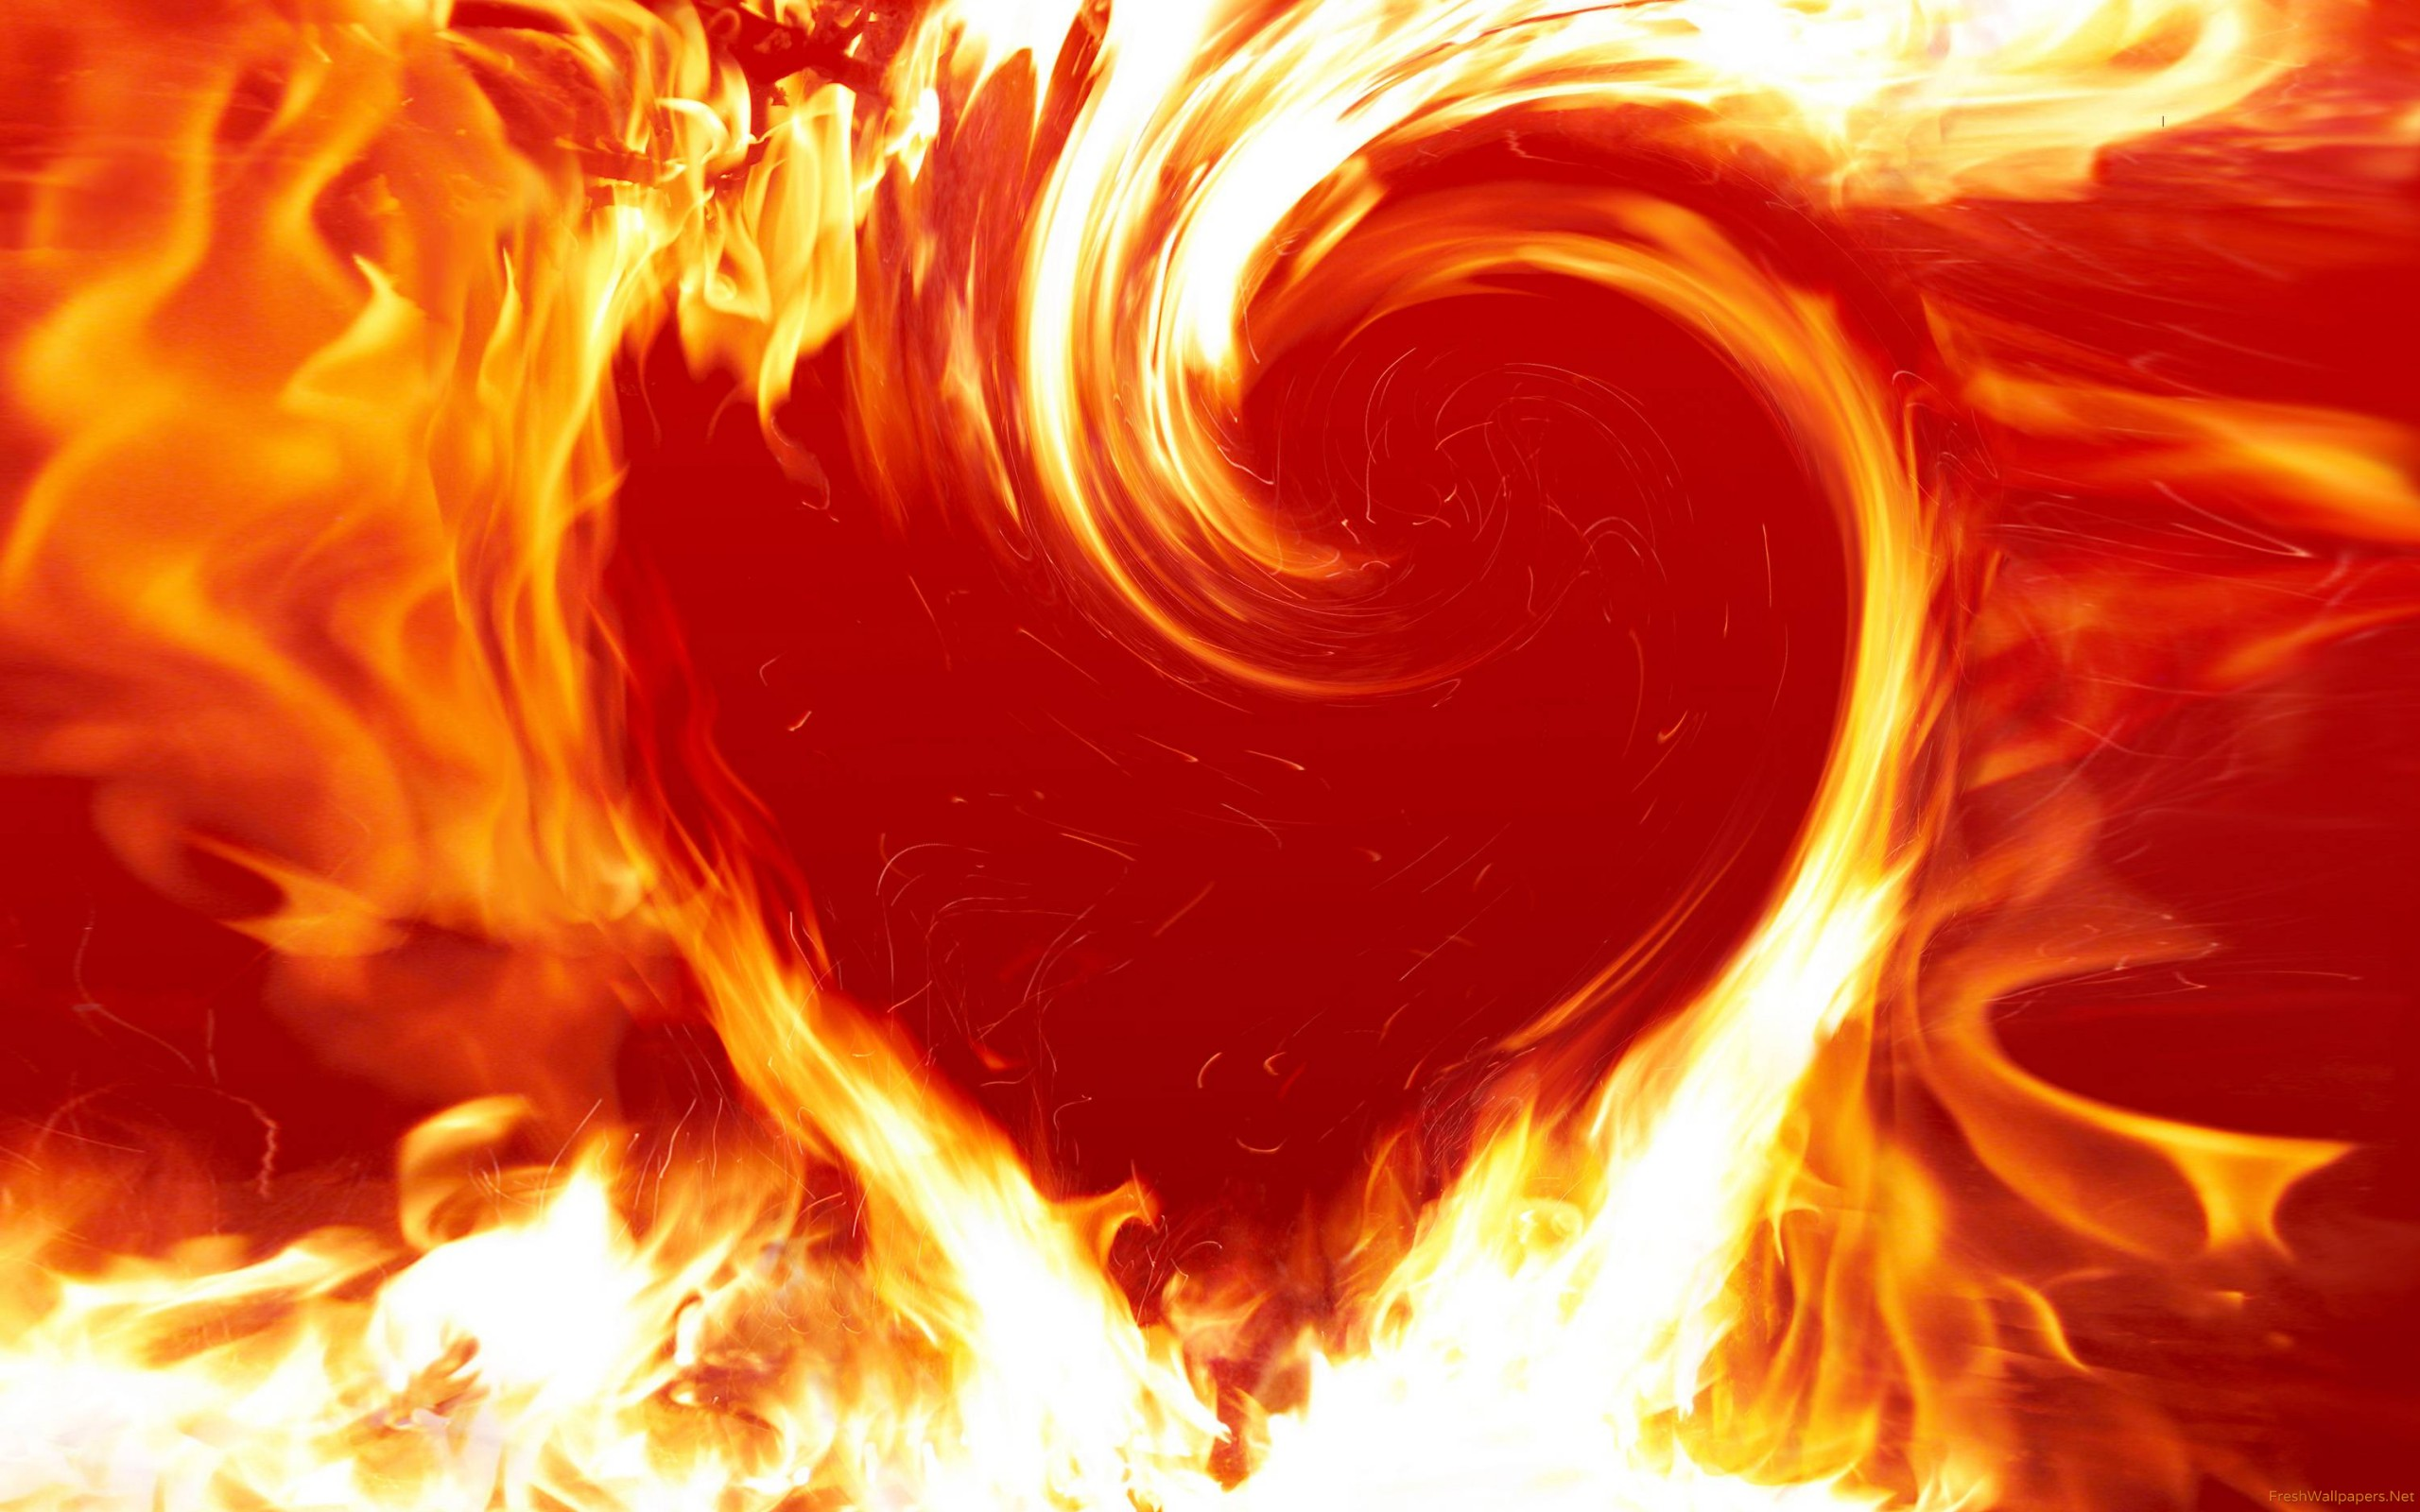 Love fire wallpapers Freshwallpapers 2560x1600